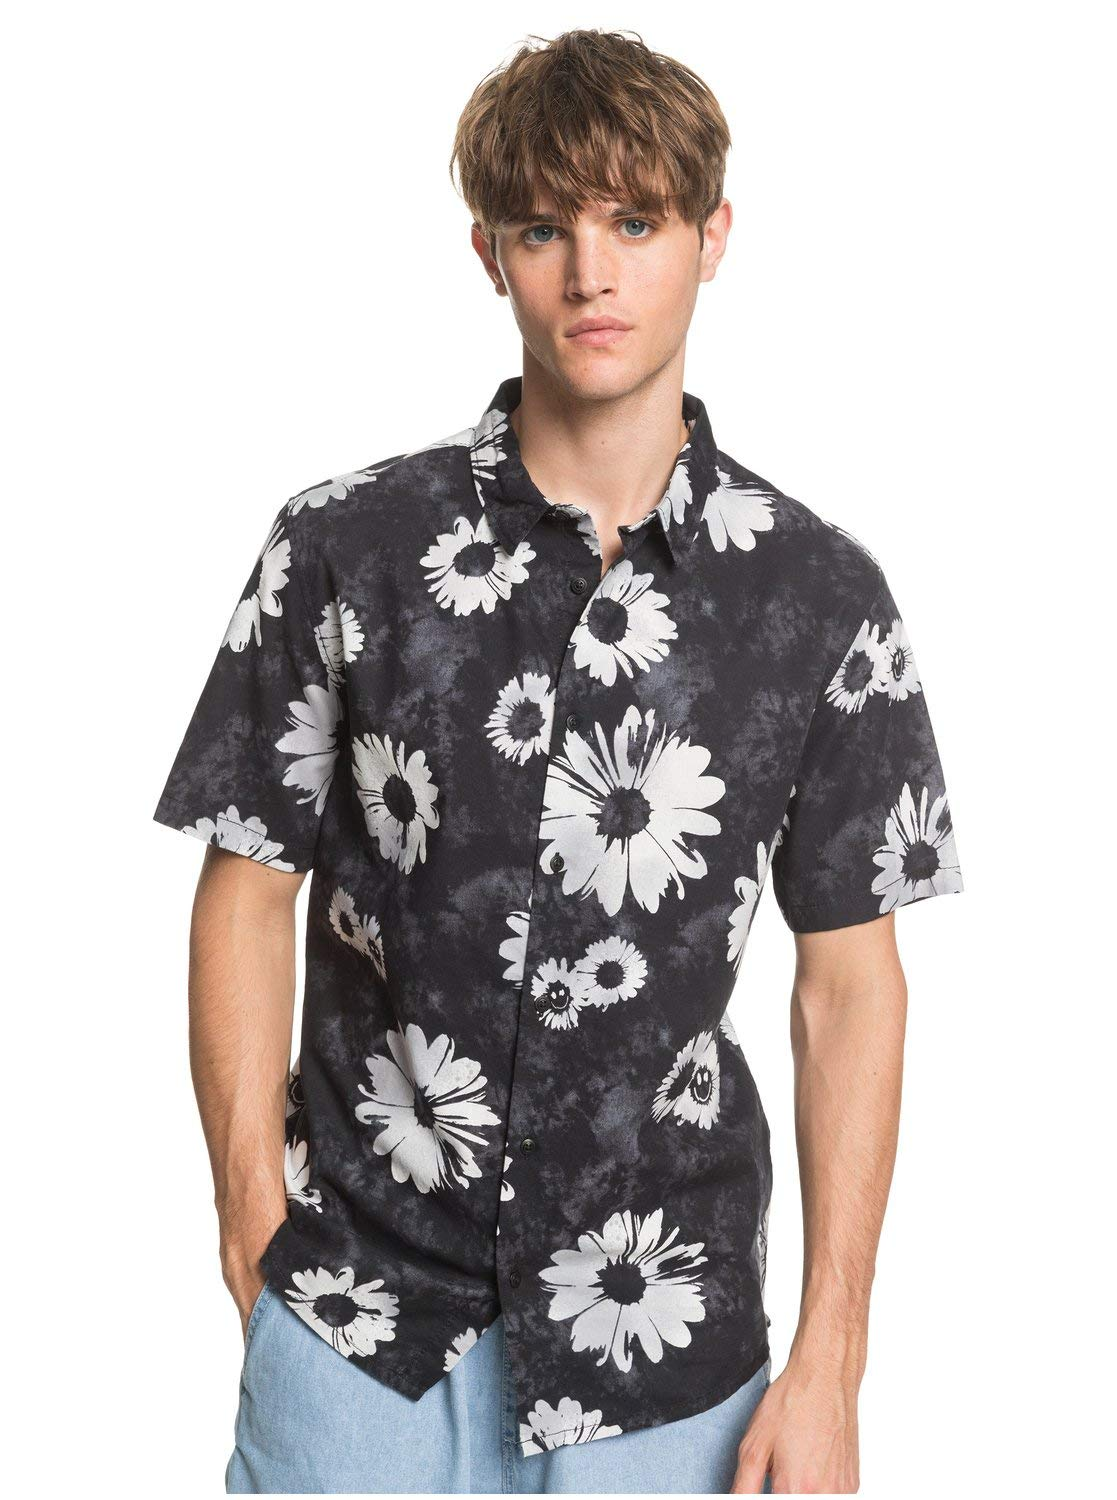 Quiksilver Men's Daisy Spray Short Sleeve Cotton